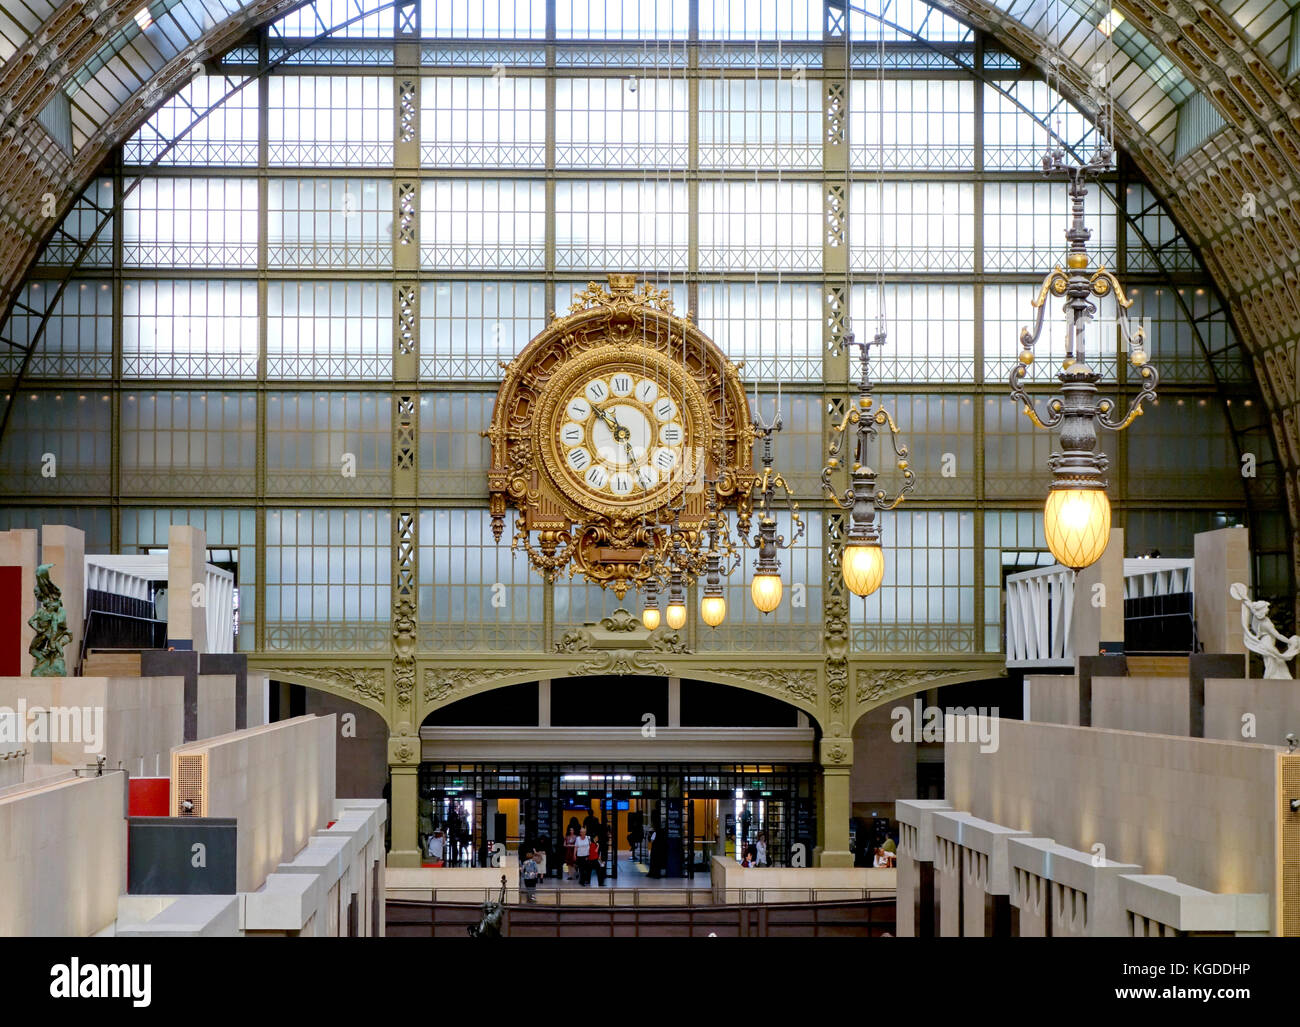 Interior of Musee d'Orsay, Paris, 2017. - Stock Image